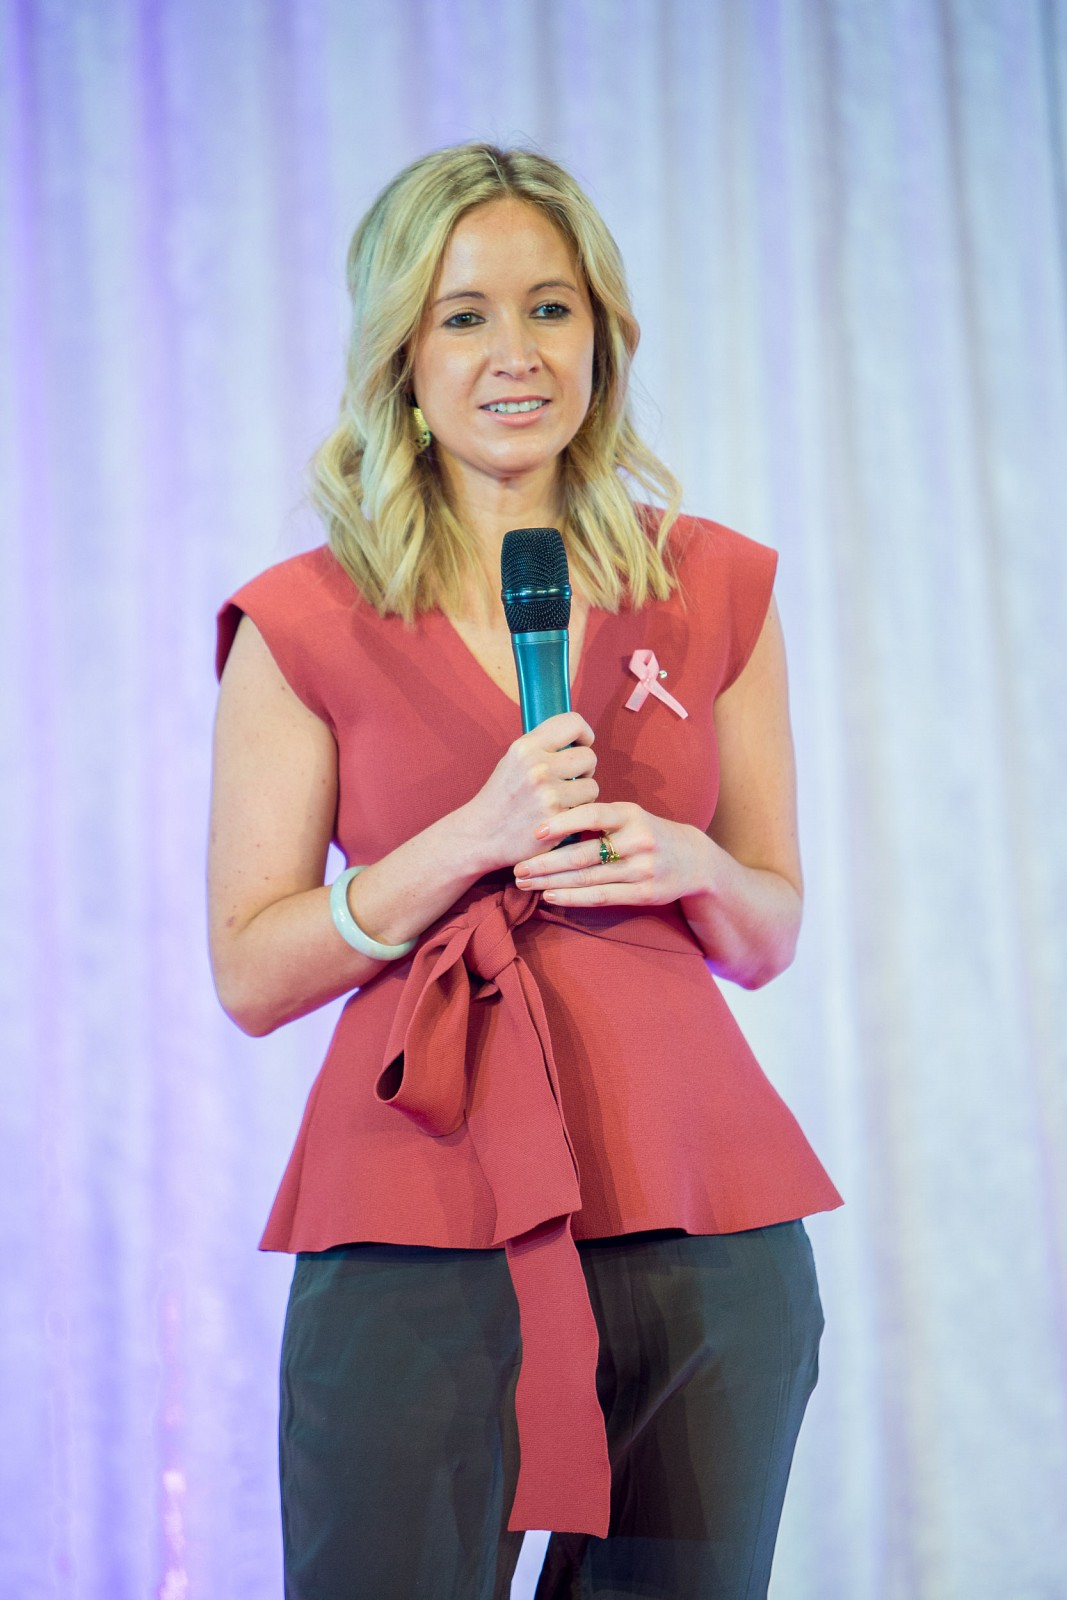 Zara delivers the keynote speech in front of 850 guests at Victorian Events Committee's 12th annual Pink Ribbon breakfast at Flemington Racecourse